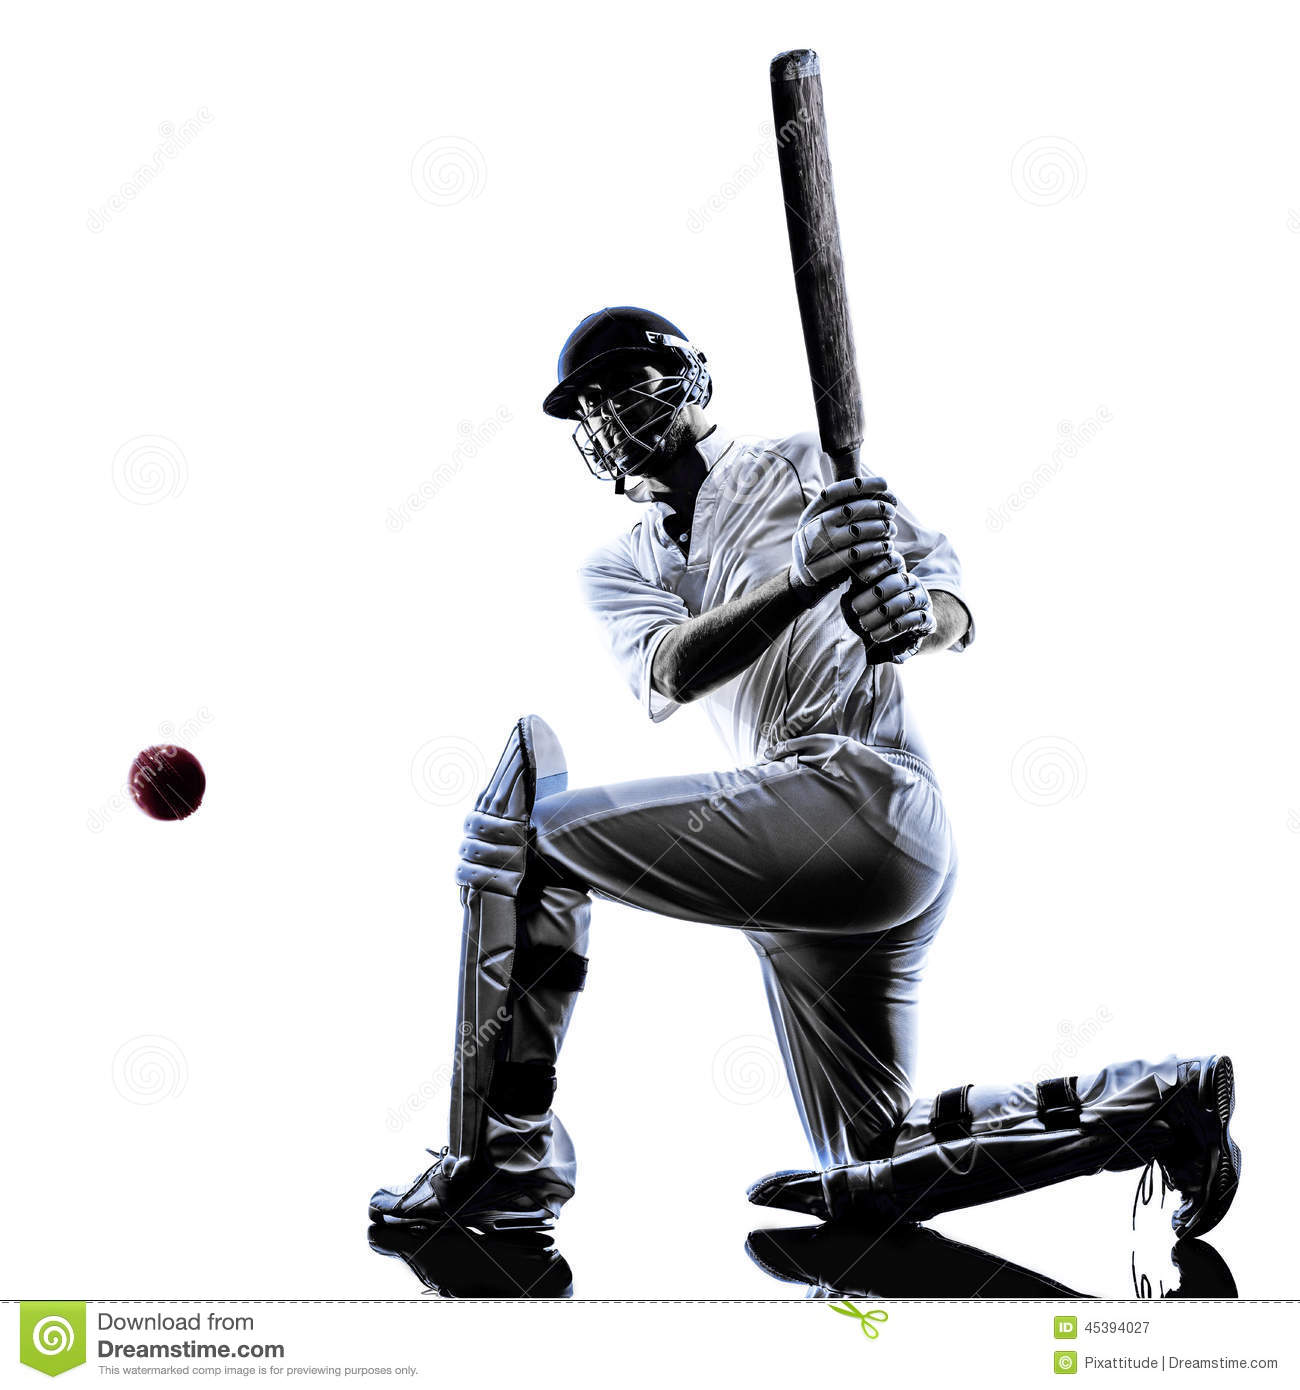 how to play good cricket